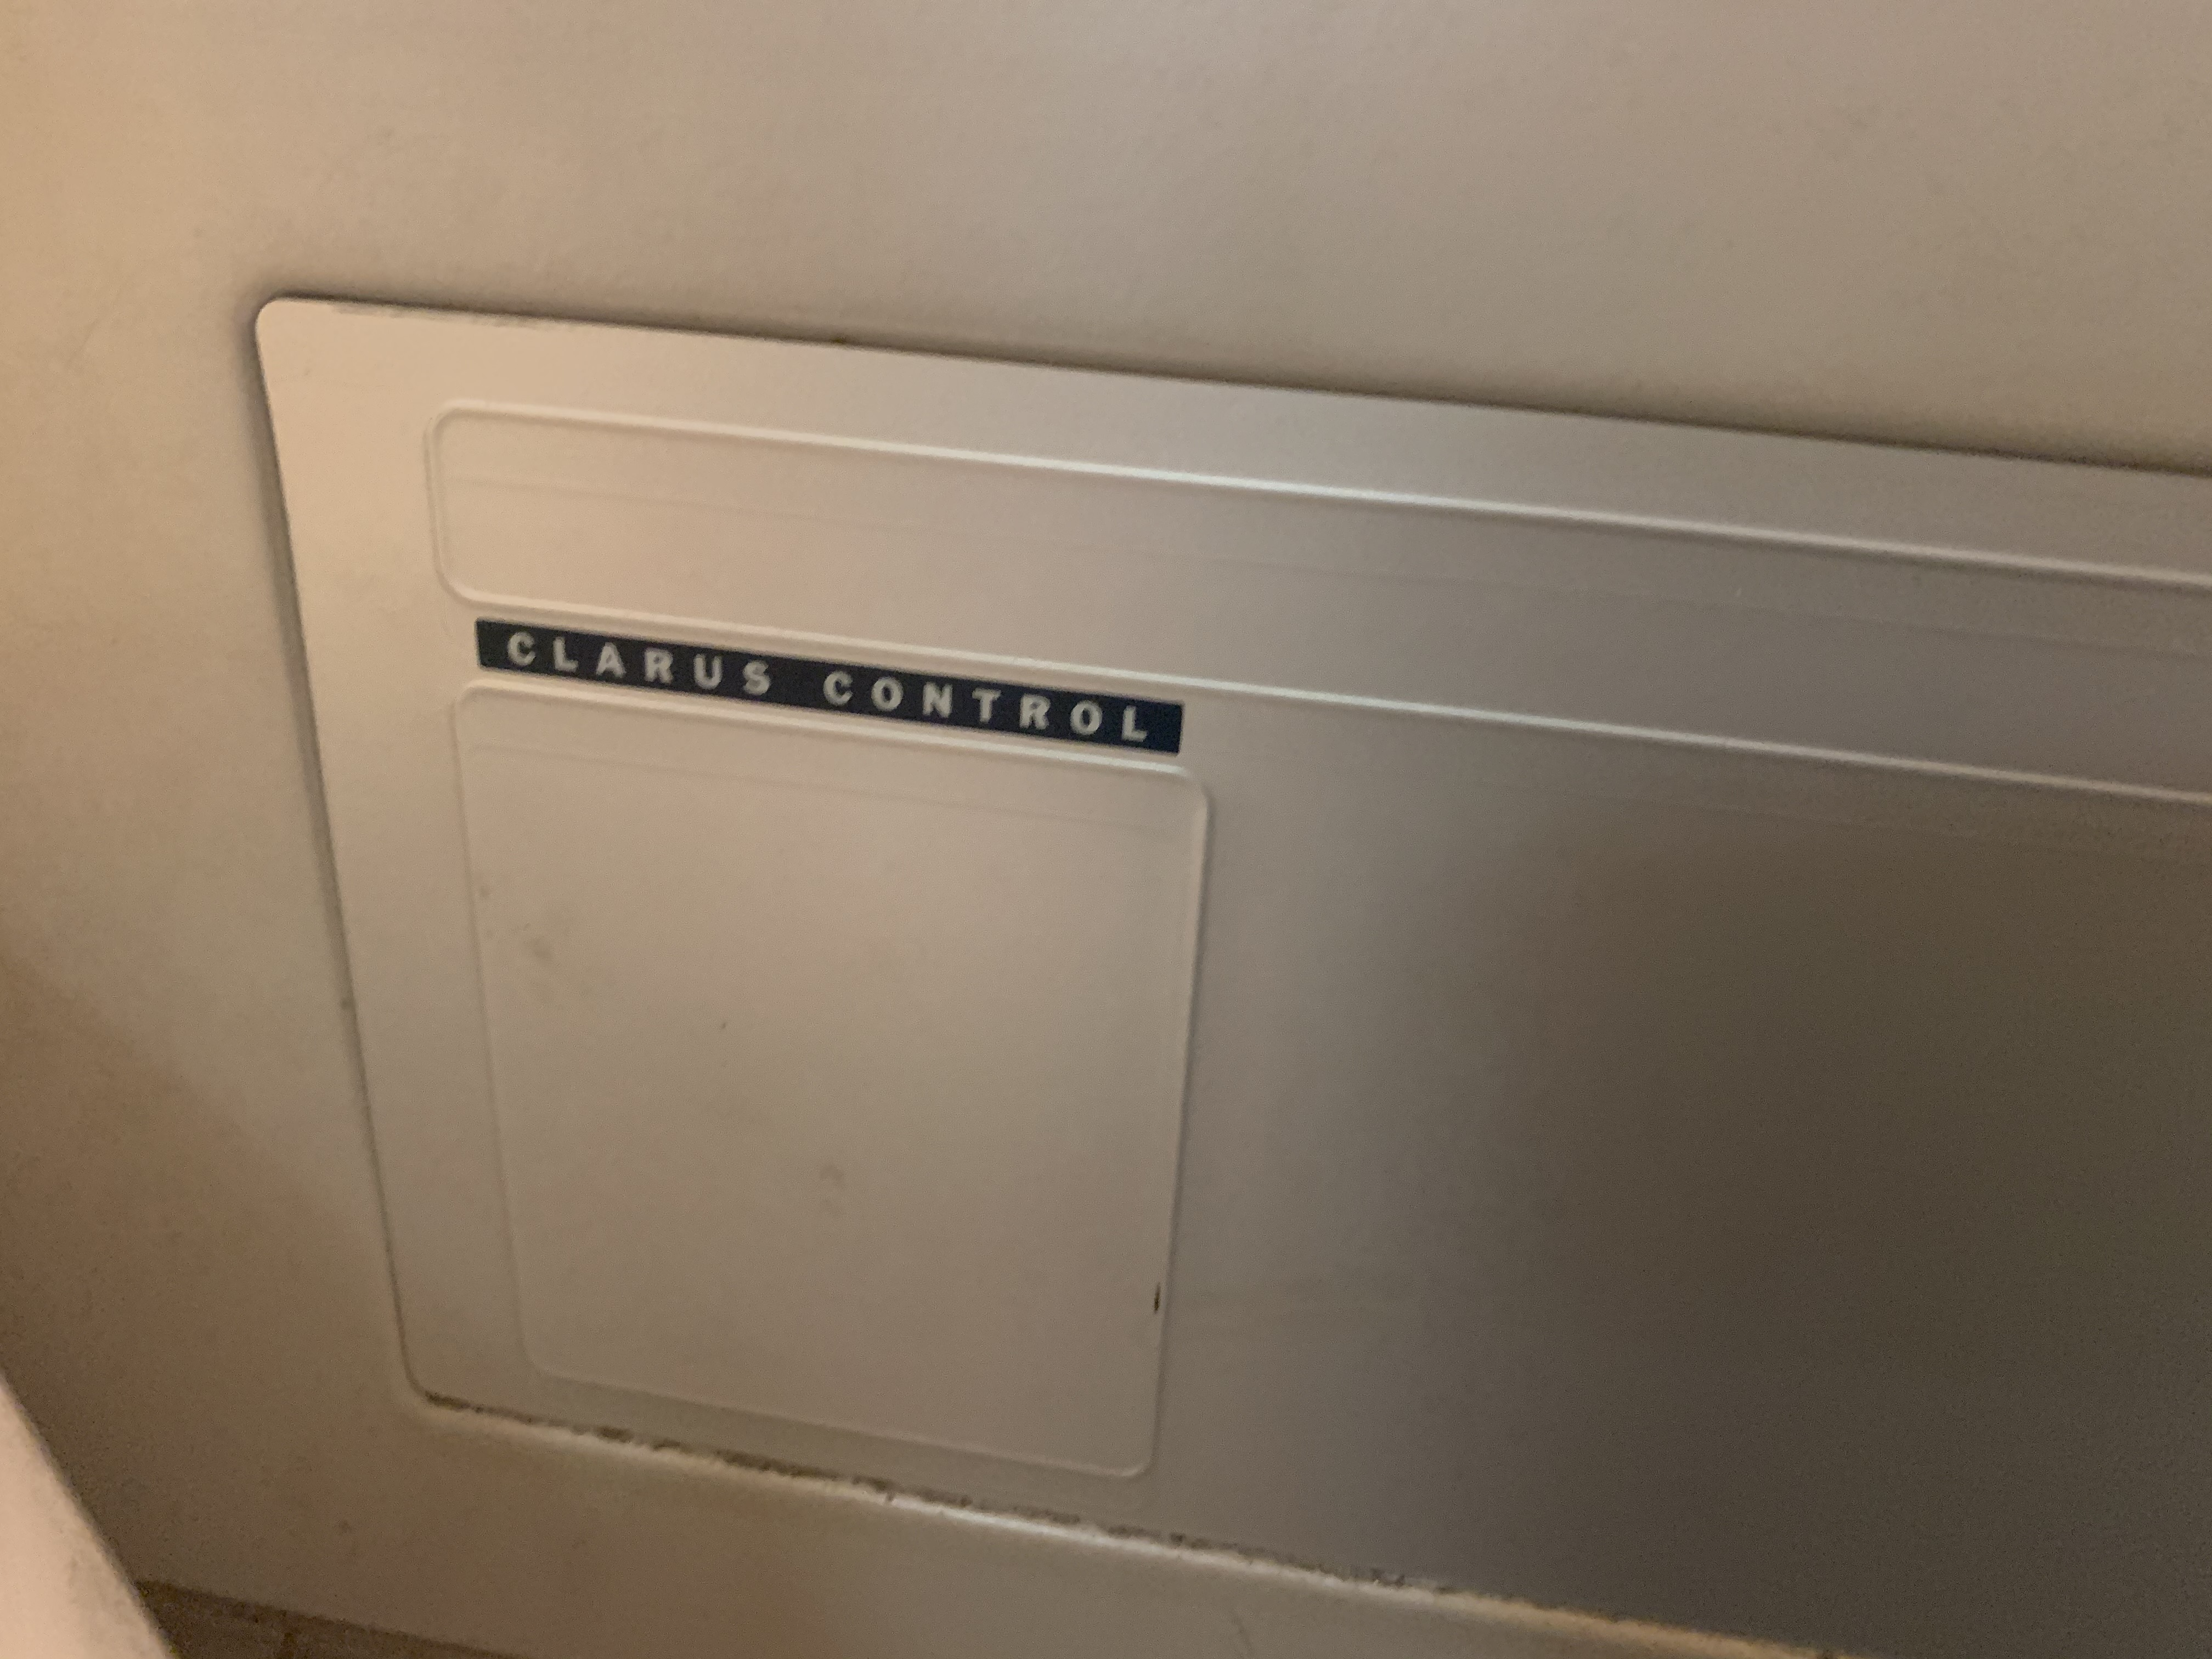 WASCOMAT SV640C WASHING MACHINE WITH CLARUS CONTROL - 40LB CAPACITY - Image 2 of 8